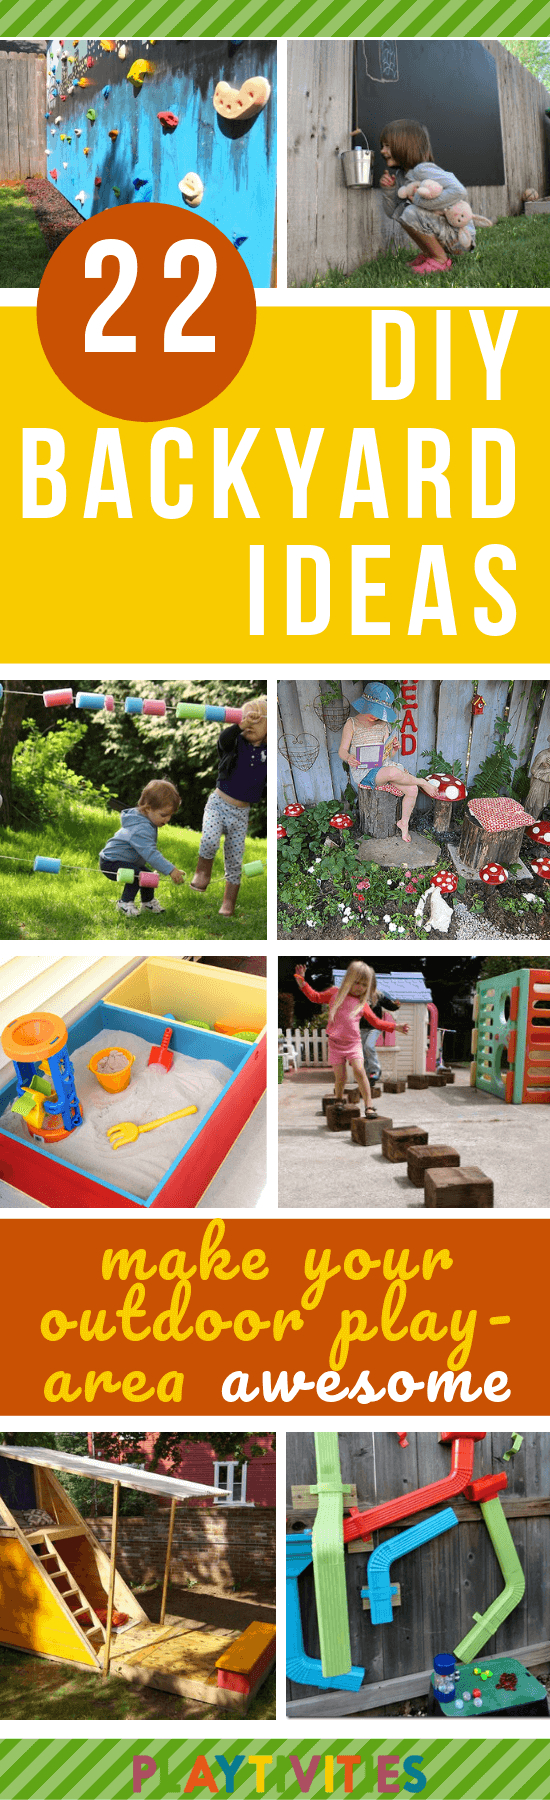 Diy Backyard Ideas For Kids 22 Easy And Cheap Ideas Playtivities with regard to 14 Genius Ways How to Improve Backyard Ideas For Kids